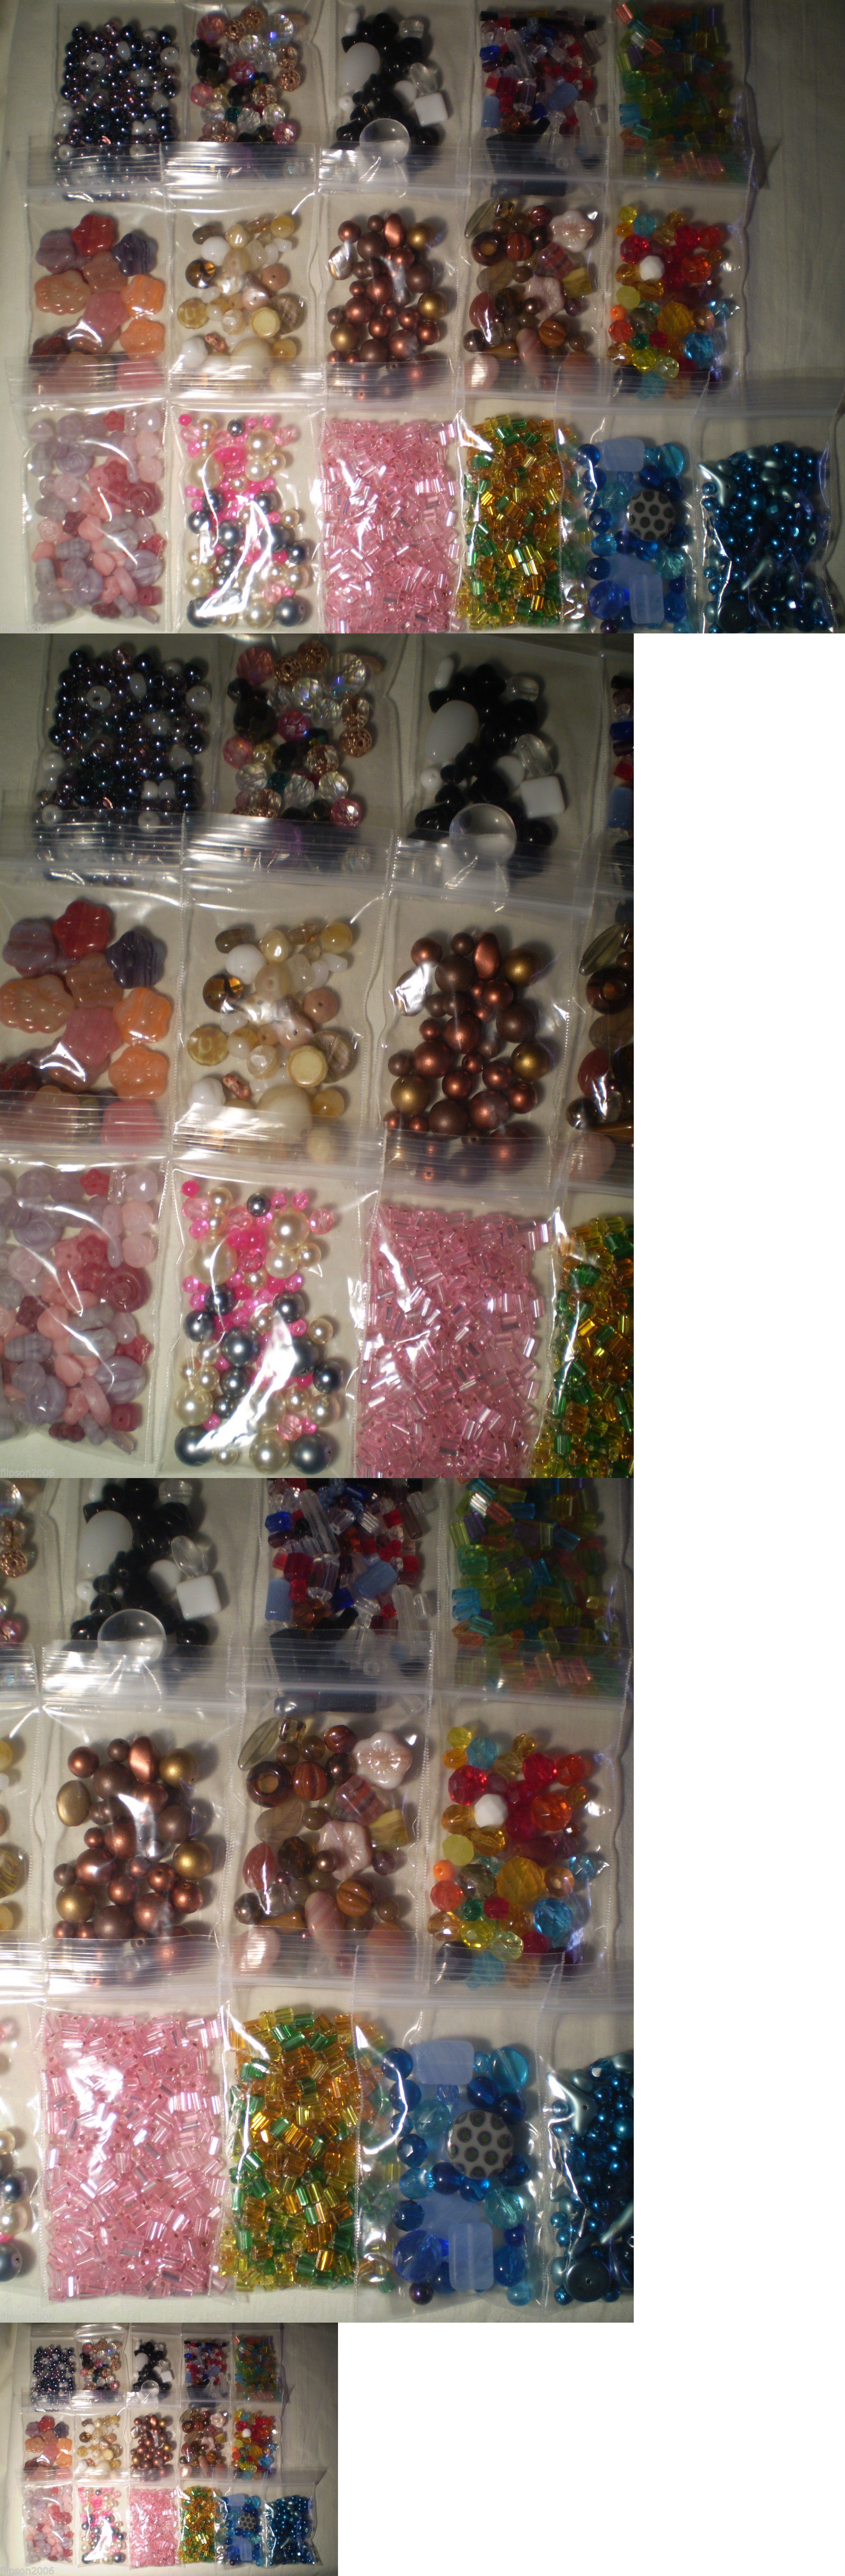 fast pound itm mixed glass in one beads us shipping lot bulk wholesale oz assorted buy